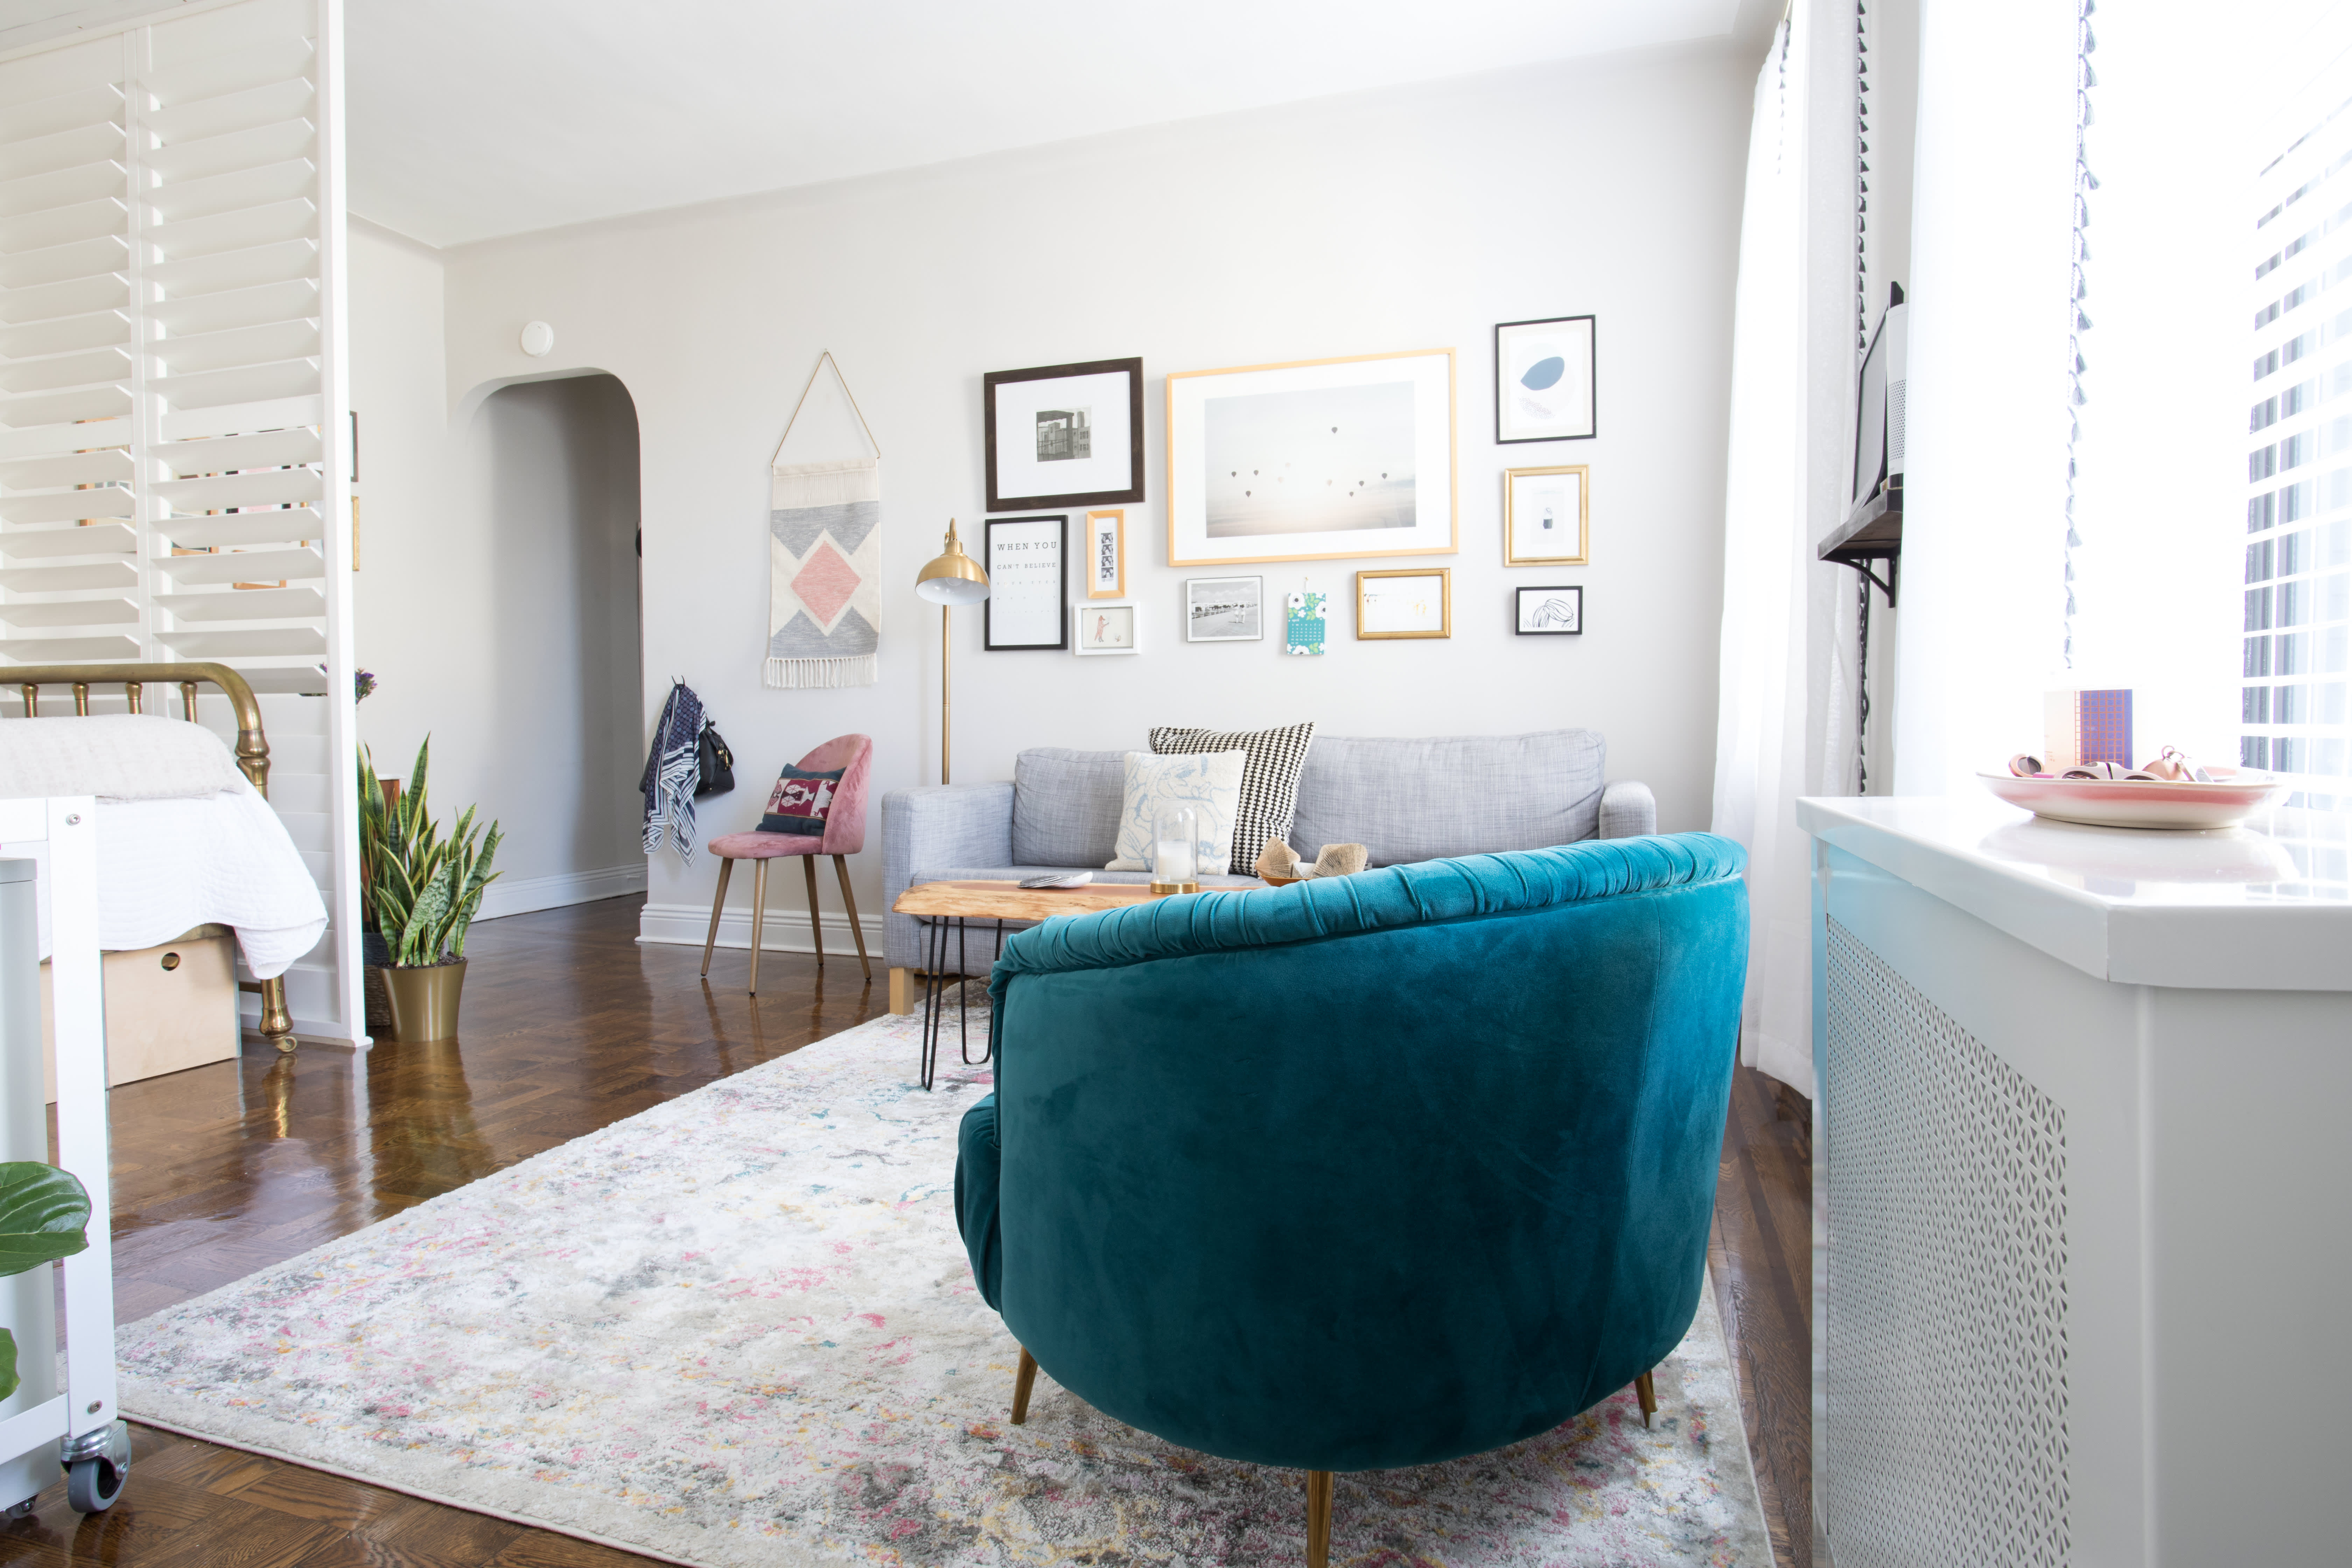 NYC Home Tour: A 500-Square-Foot Brooklyn Studio | Apartment